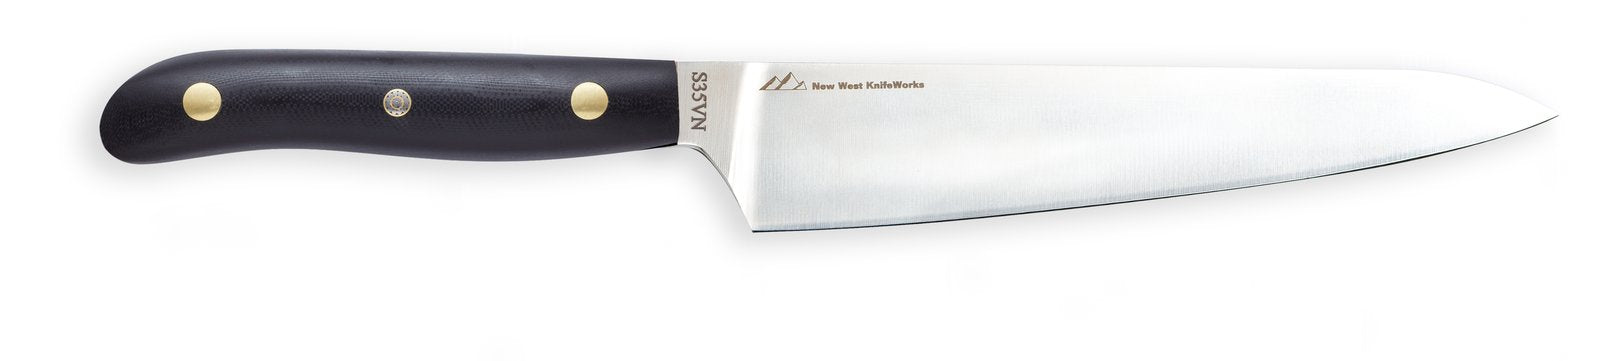 Chef's Knife from New West KnifeWorks